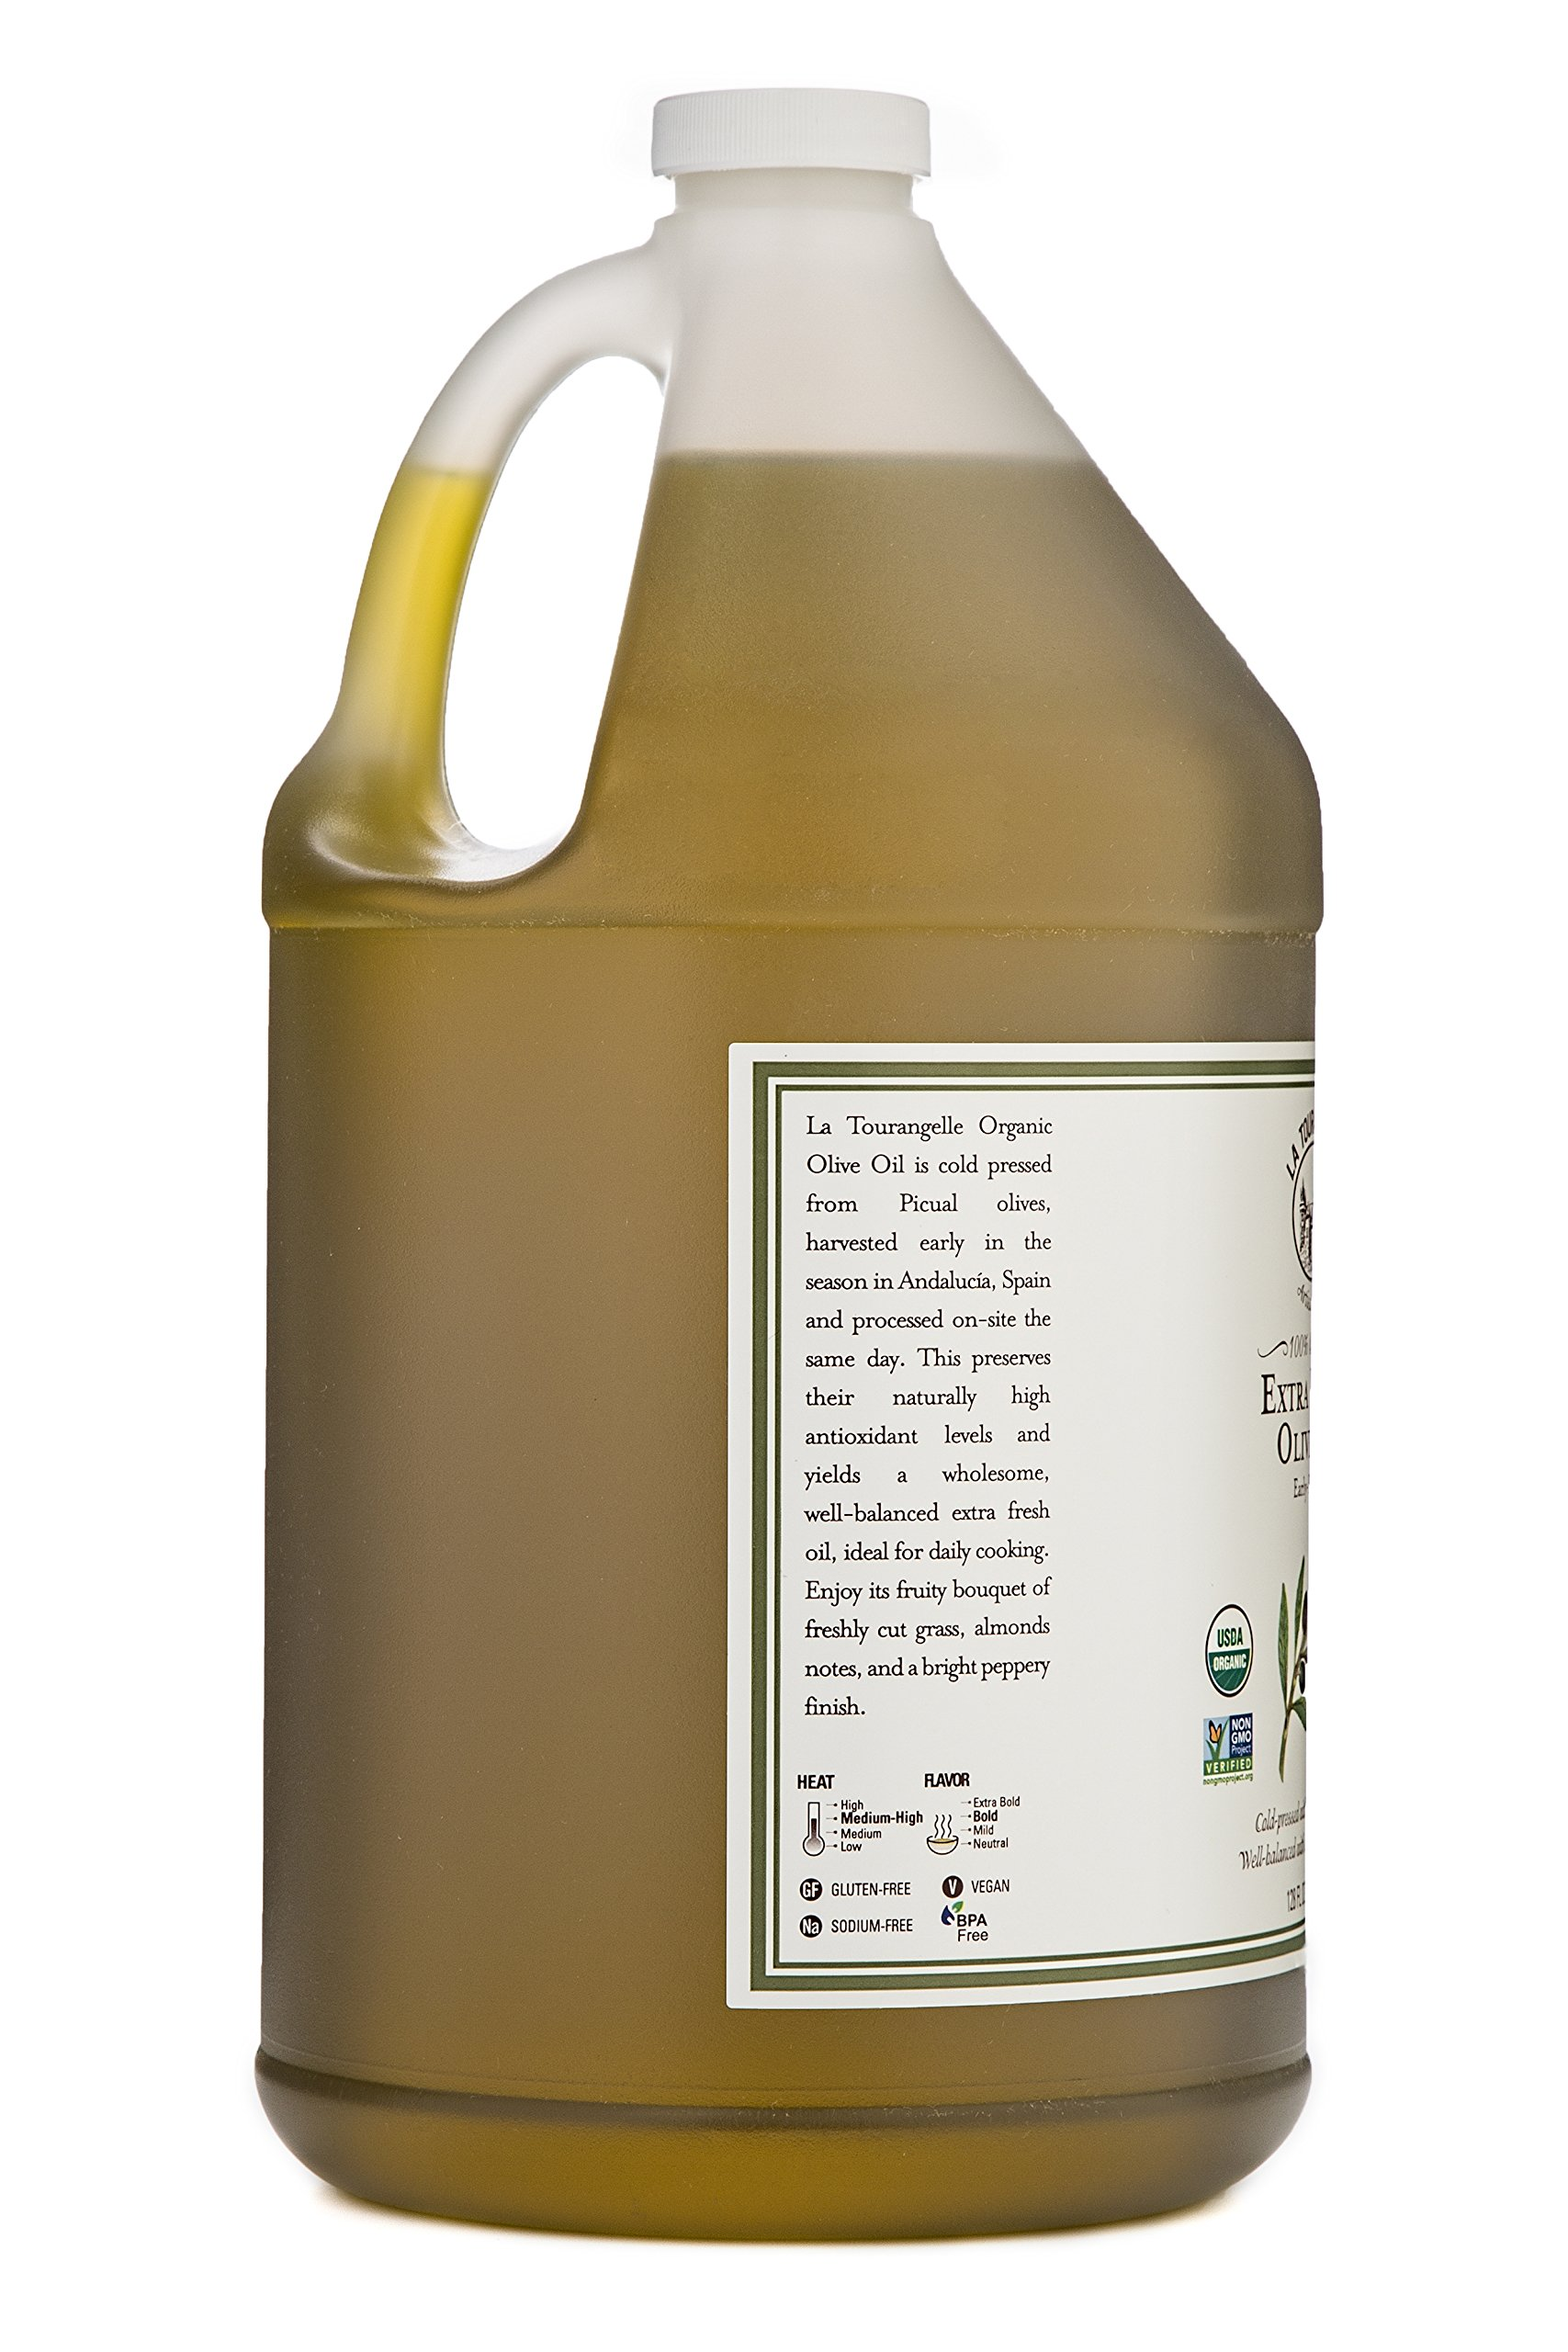 La Tourangelle Organic Extra Virgin Olive Oil 128 Fl. Oz., Organic Cold-Pressed Extra Virgin Olive Oil, All-Natural, Artisanal, Great for Cooking, Sauteing, and Dressing by La Tourangelle (Image #3)